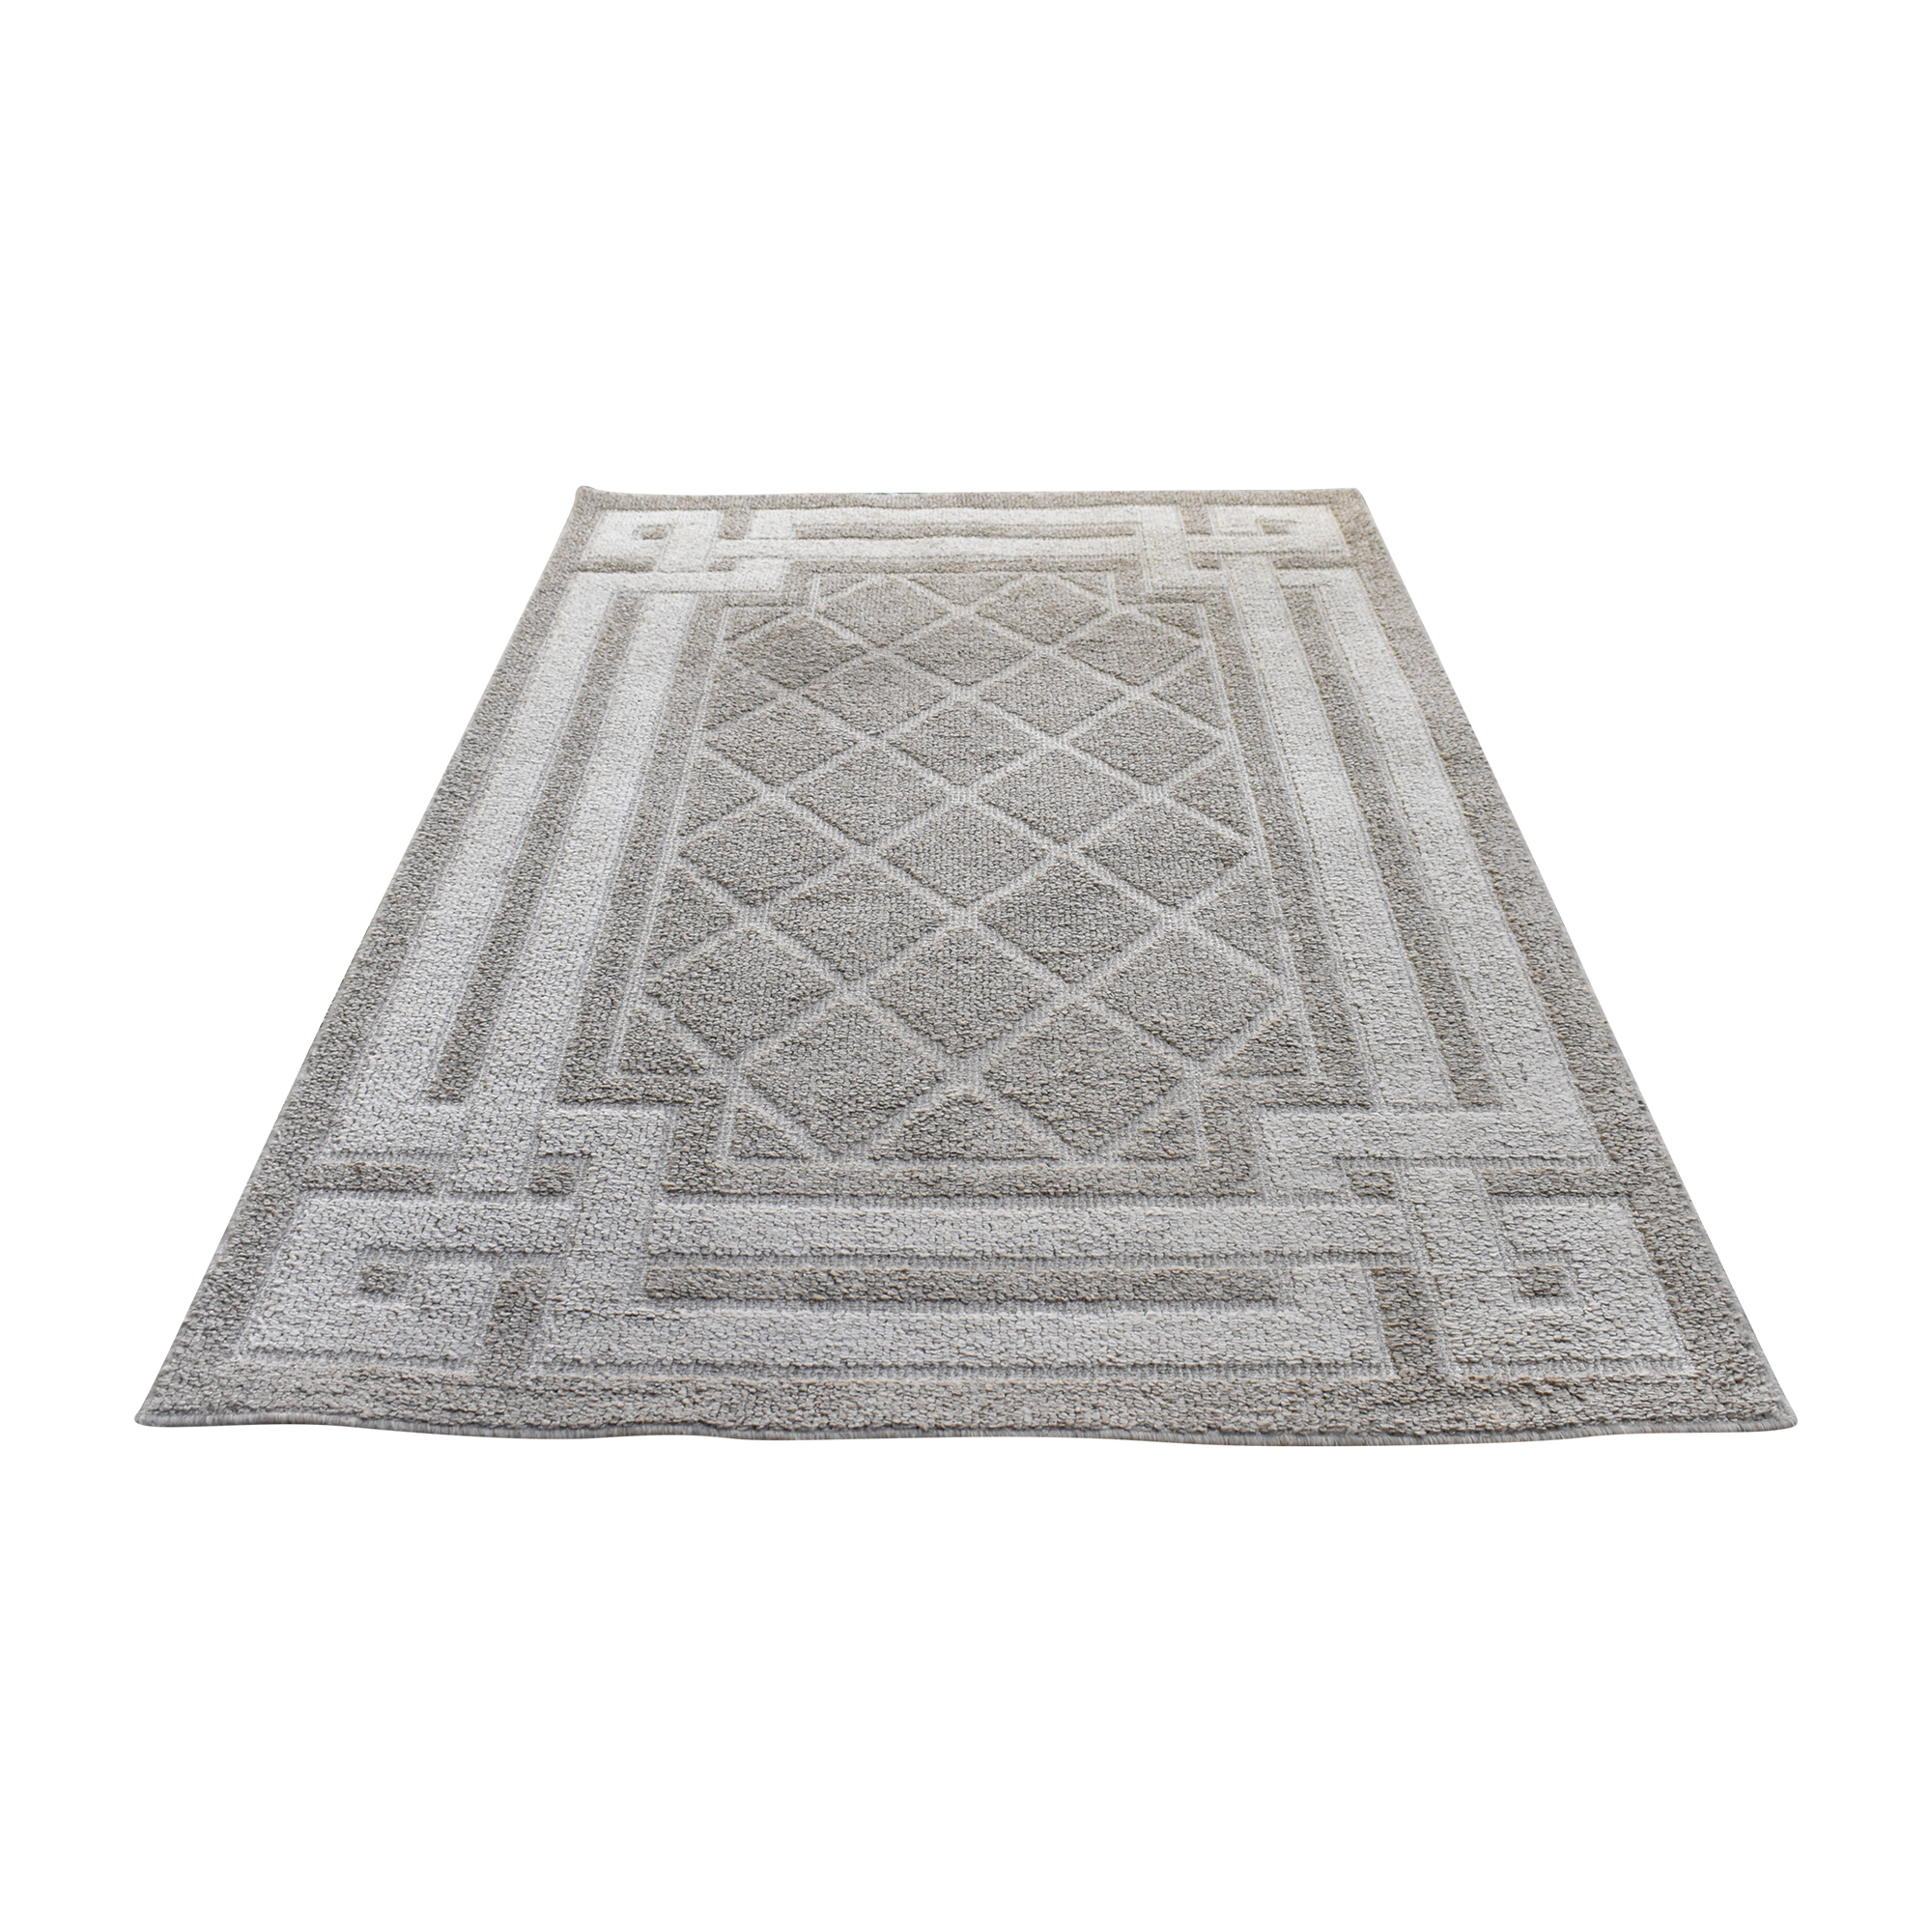 Mohawk Home Mohawk Home Area Rug for sale